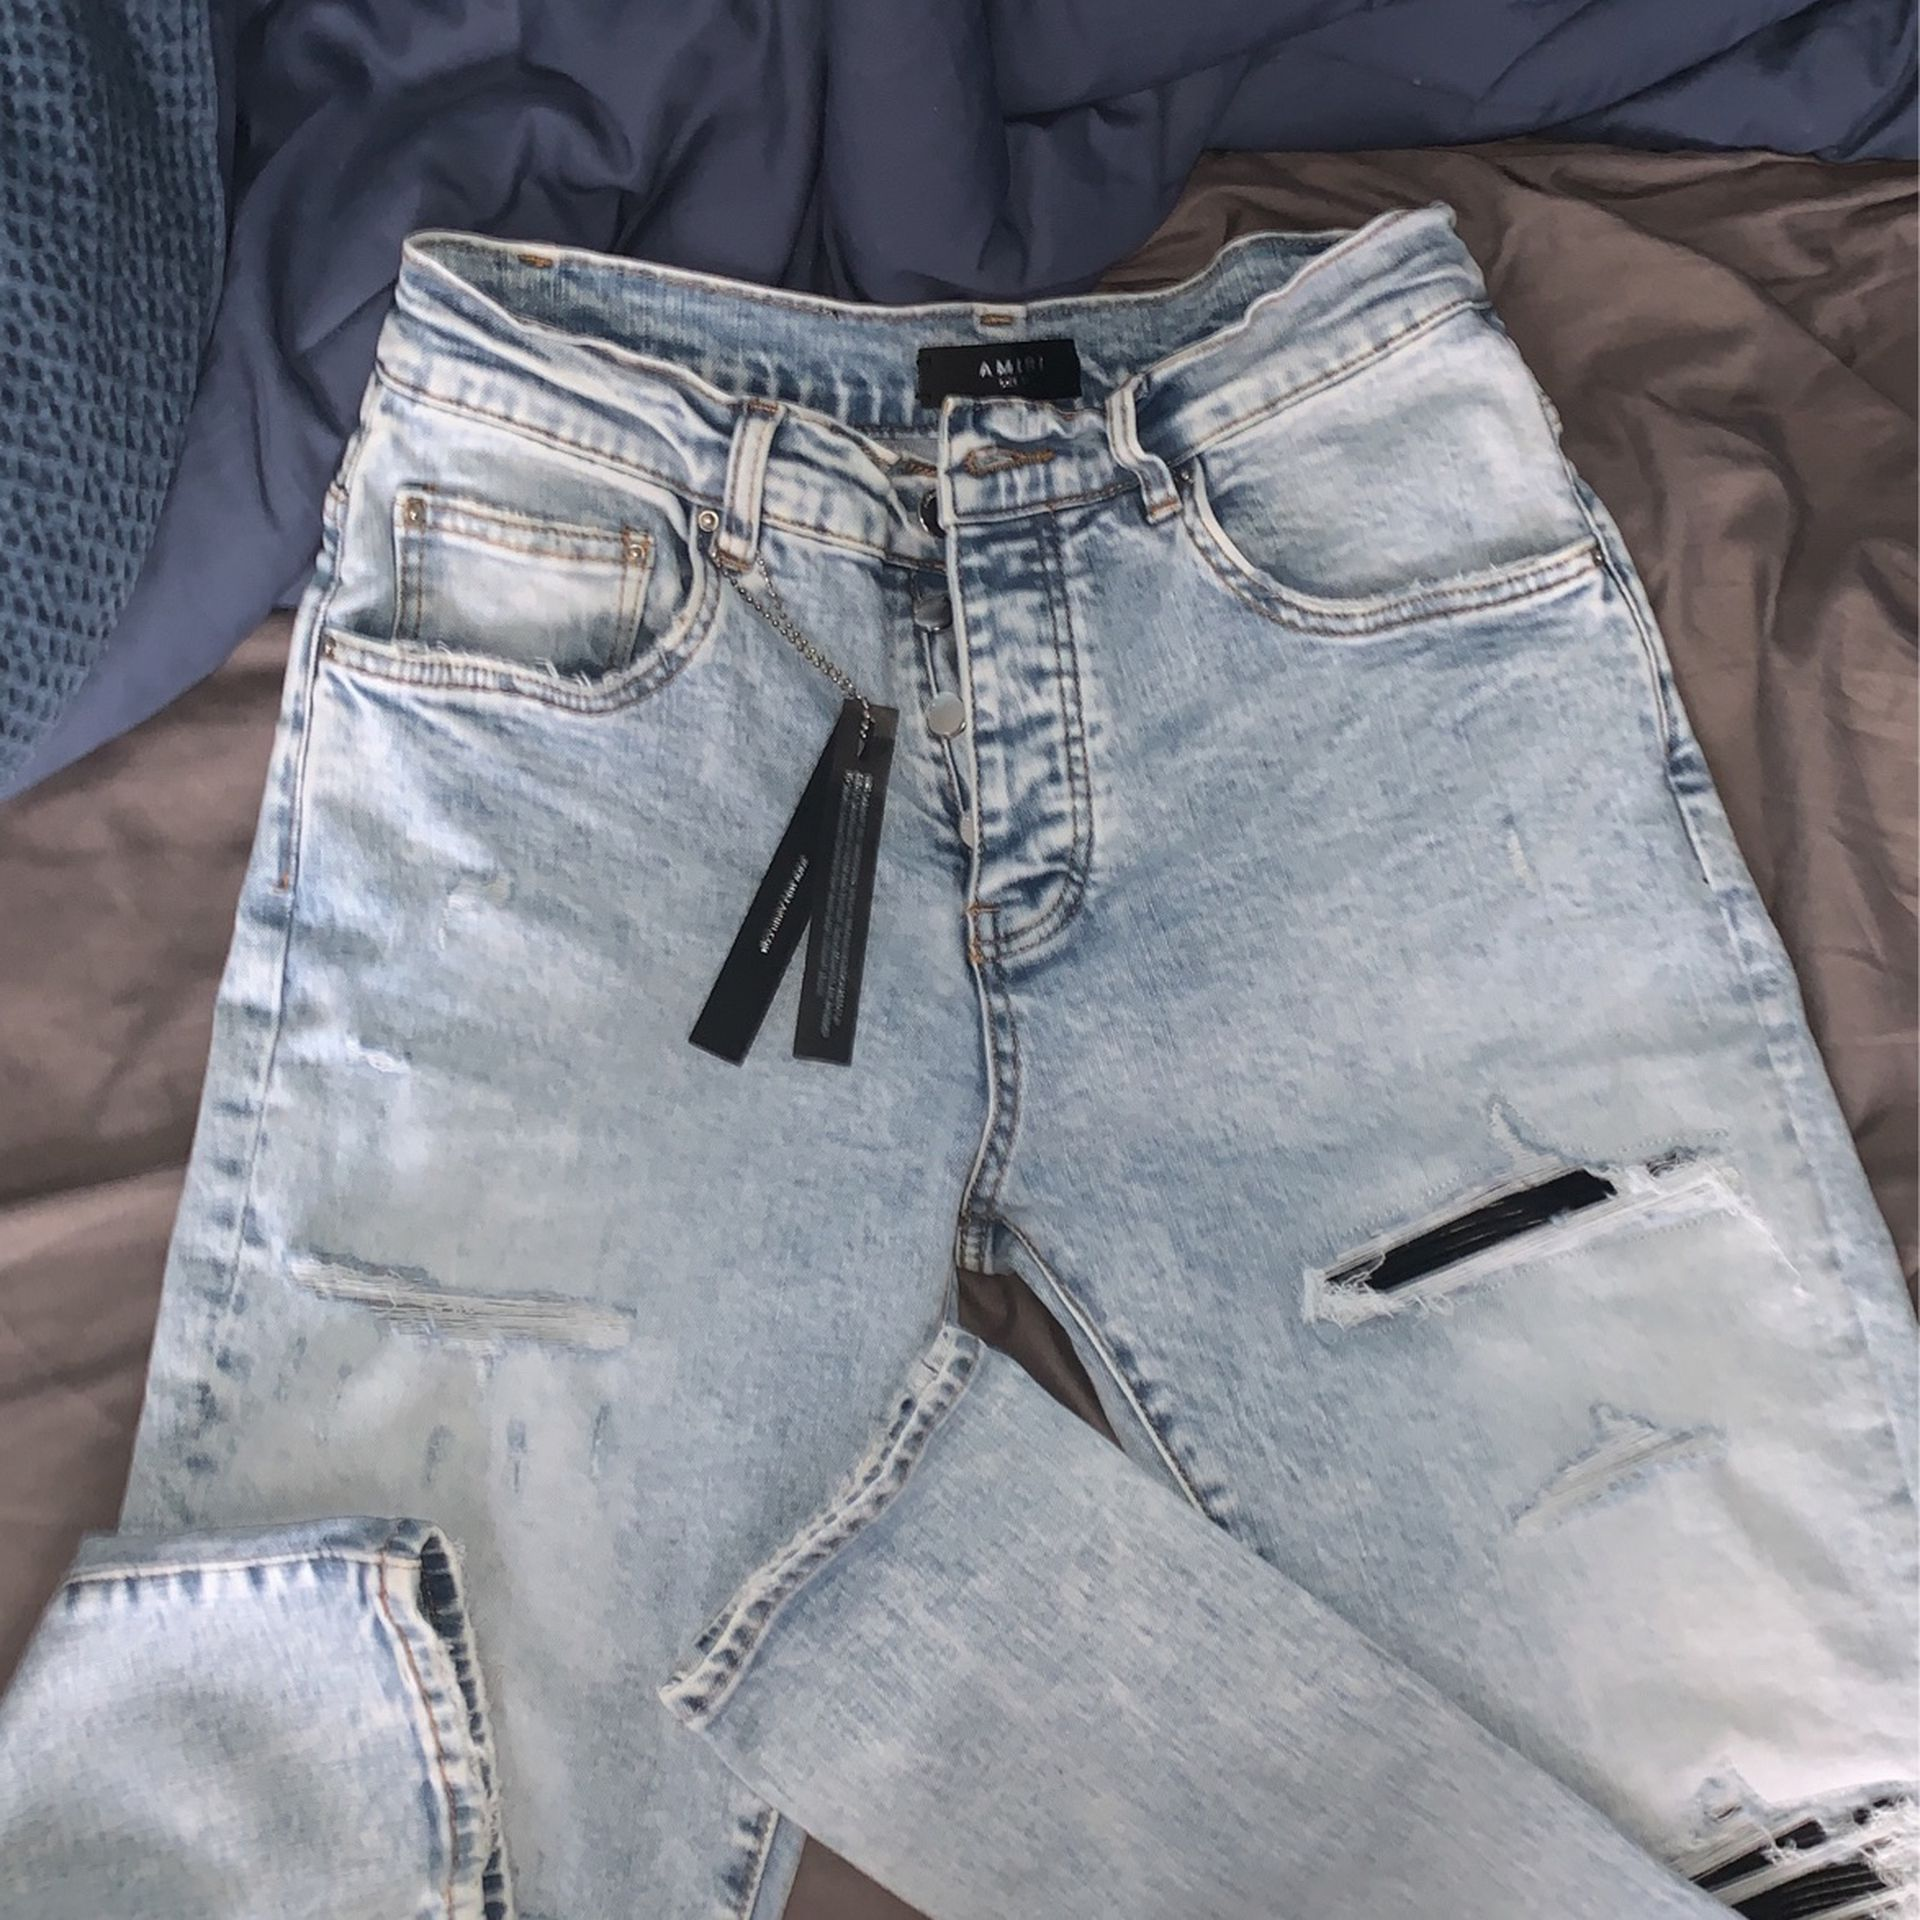 Mike Amiri Jeans Size 31 Brand New